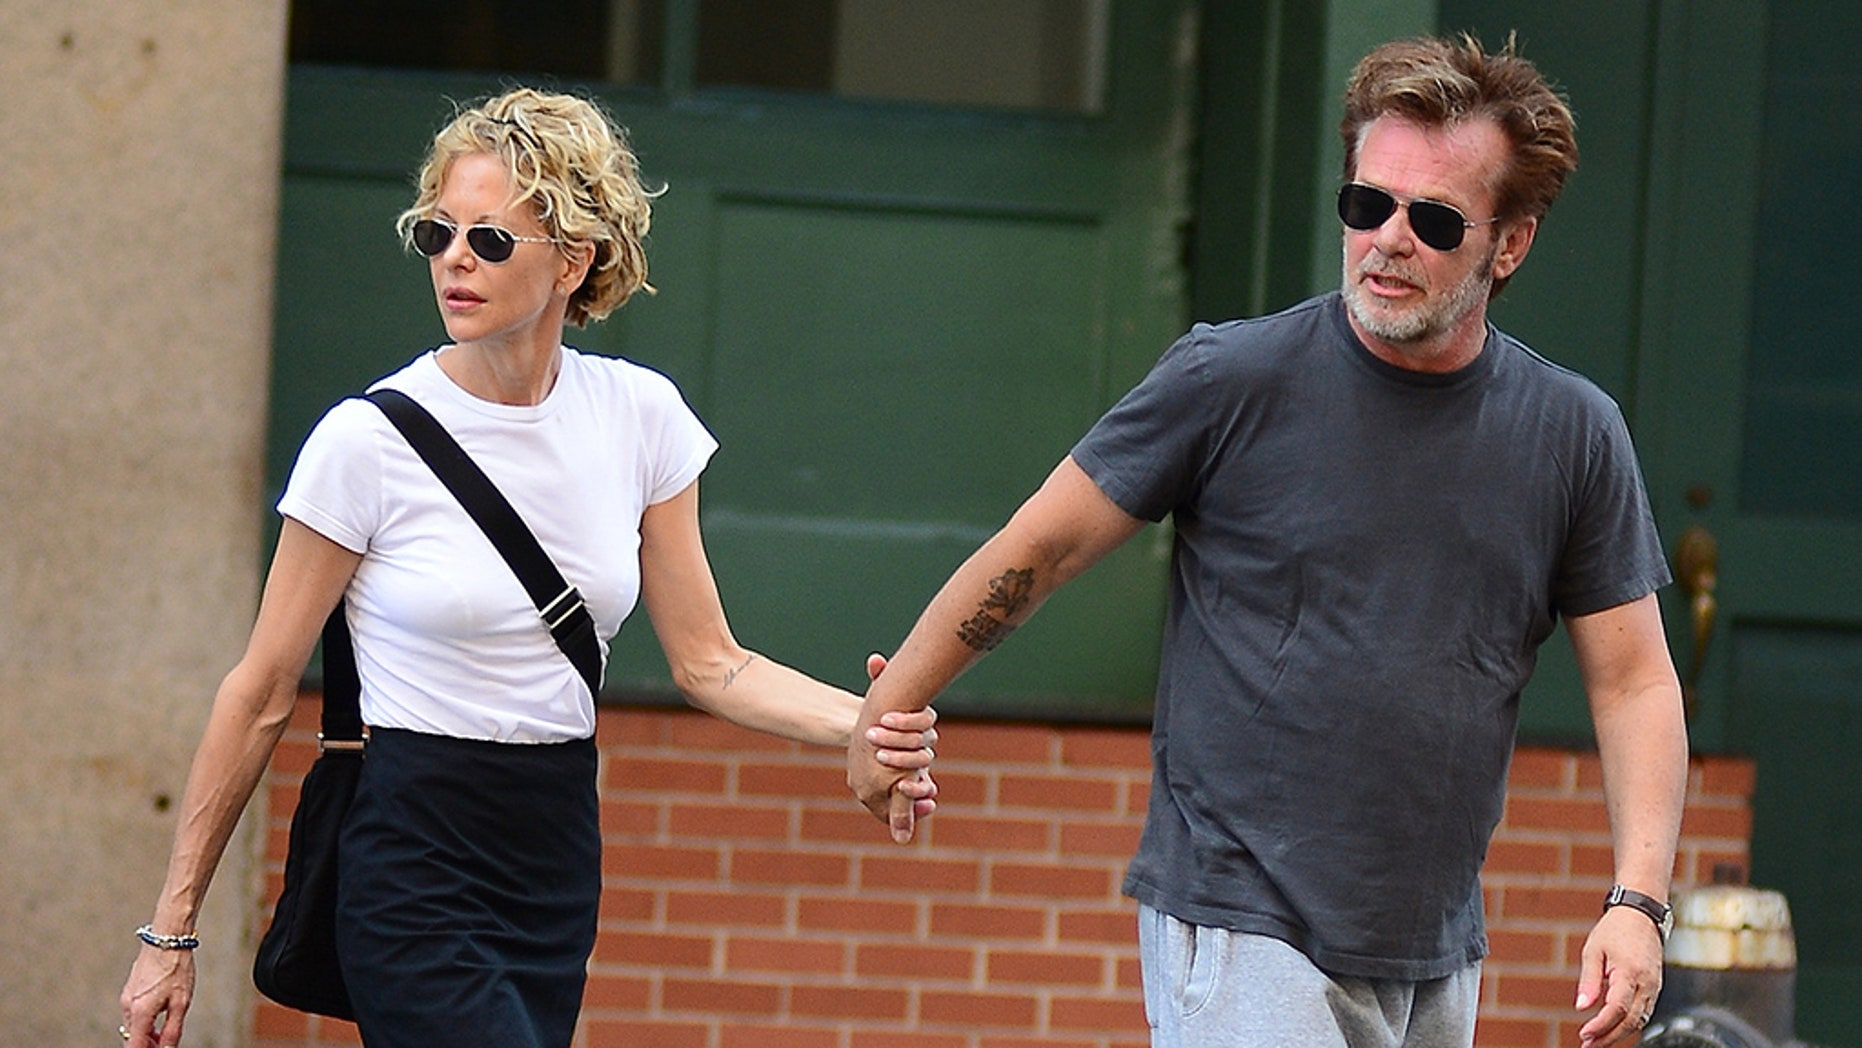 Meg Ryan and John Mellencamp, pictured here in 2013, are engaged.